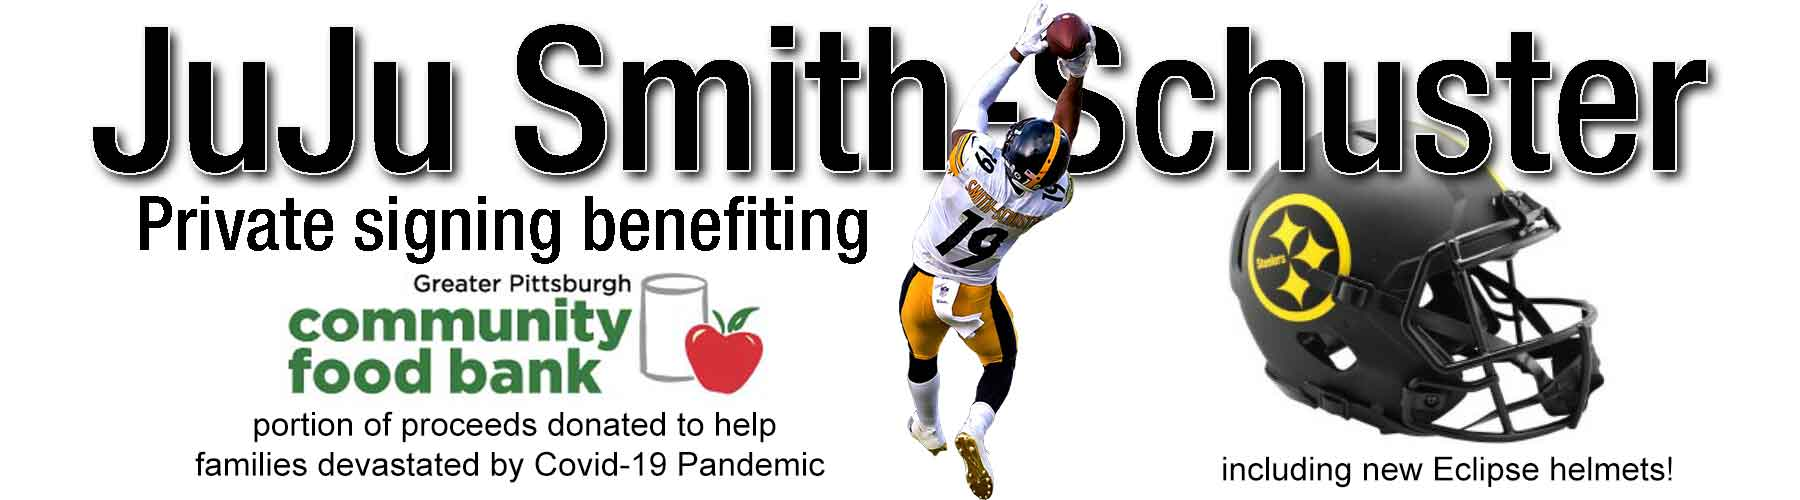 JuJu Smith-Schuster Private Signing